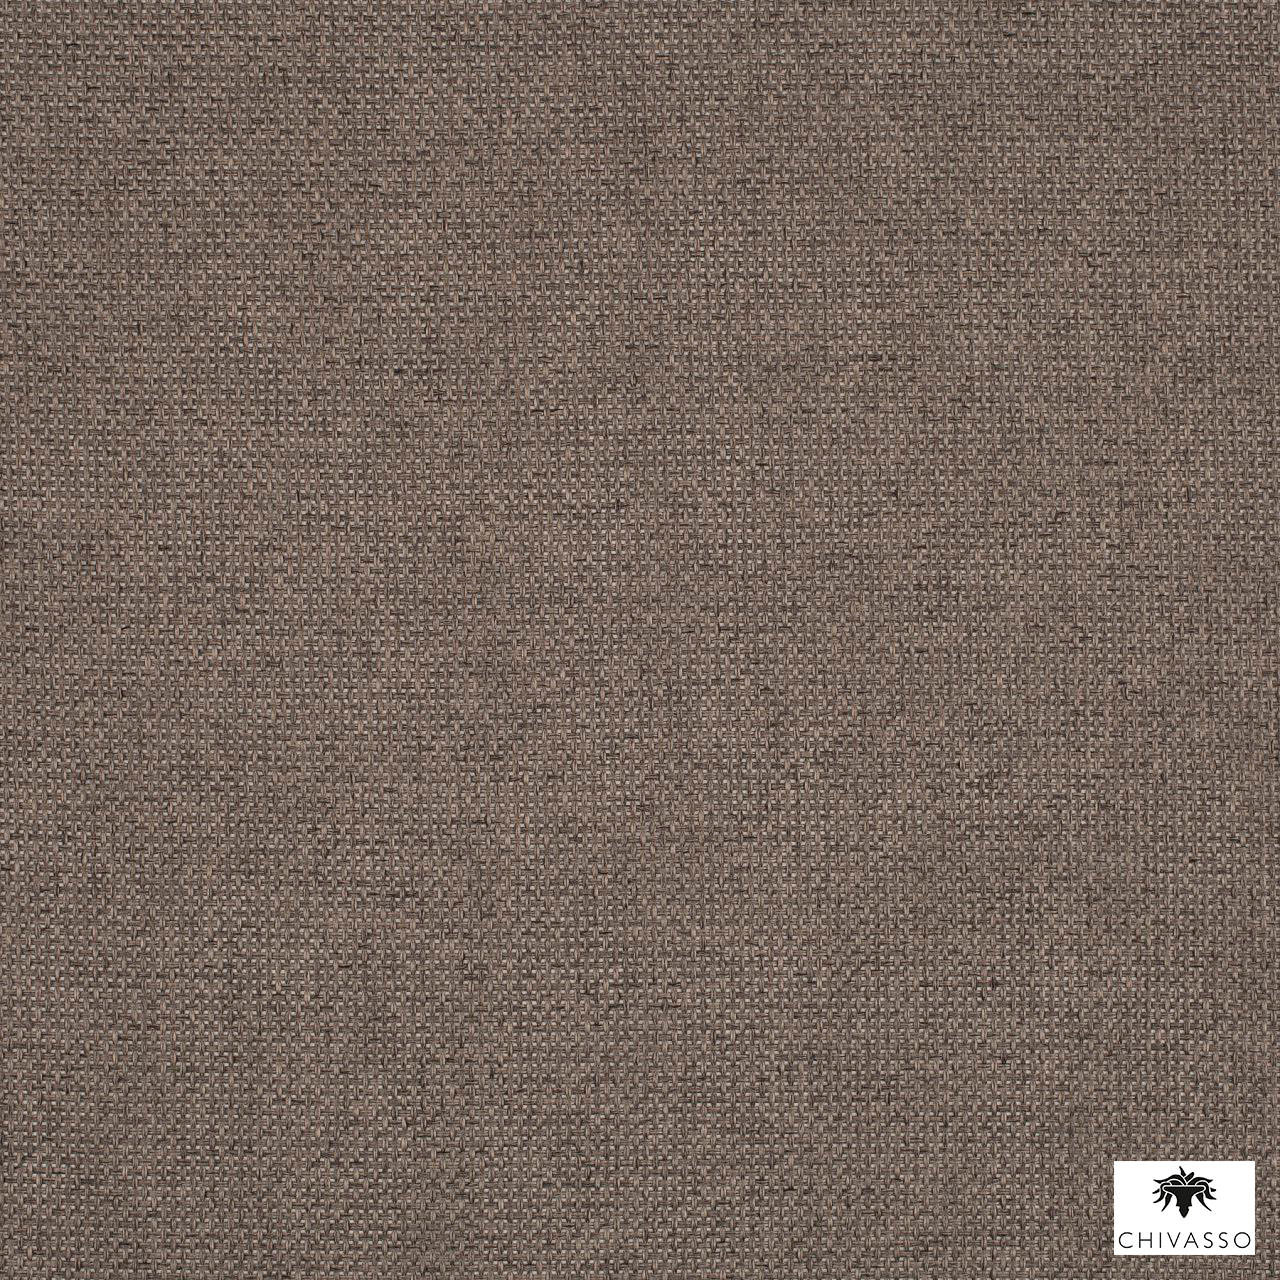 Chivasso - Twinkle - Ch2740-023  | Curtain Fabric - Brown, Plain, Synthetic, Domestic Use, Railroaded, Wide Width